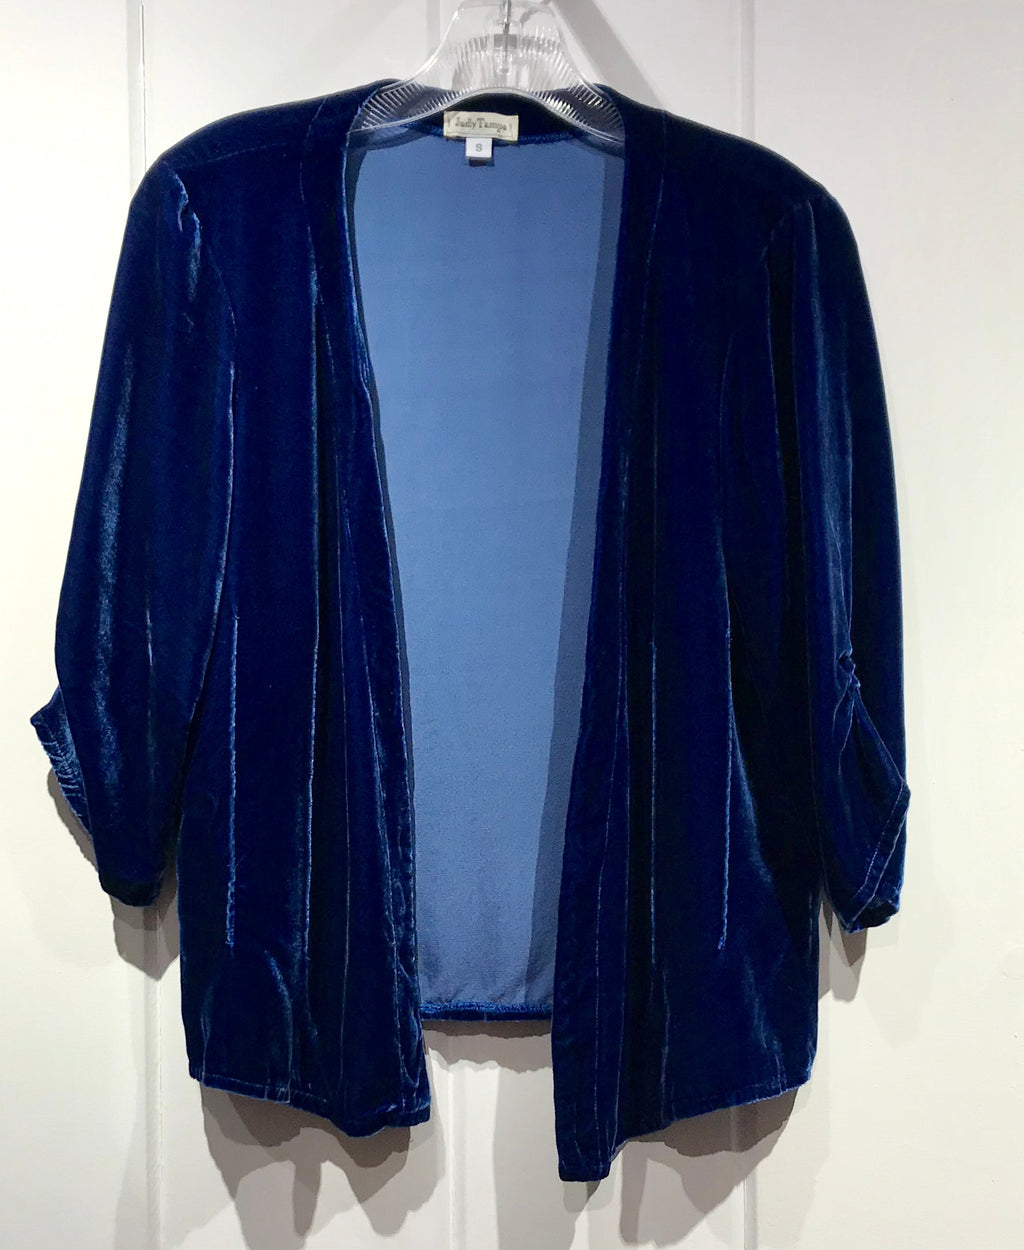 Judy Tampa Velvet Jacket in Indigo in Size S on Sale